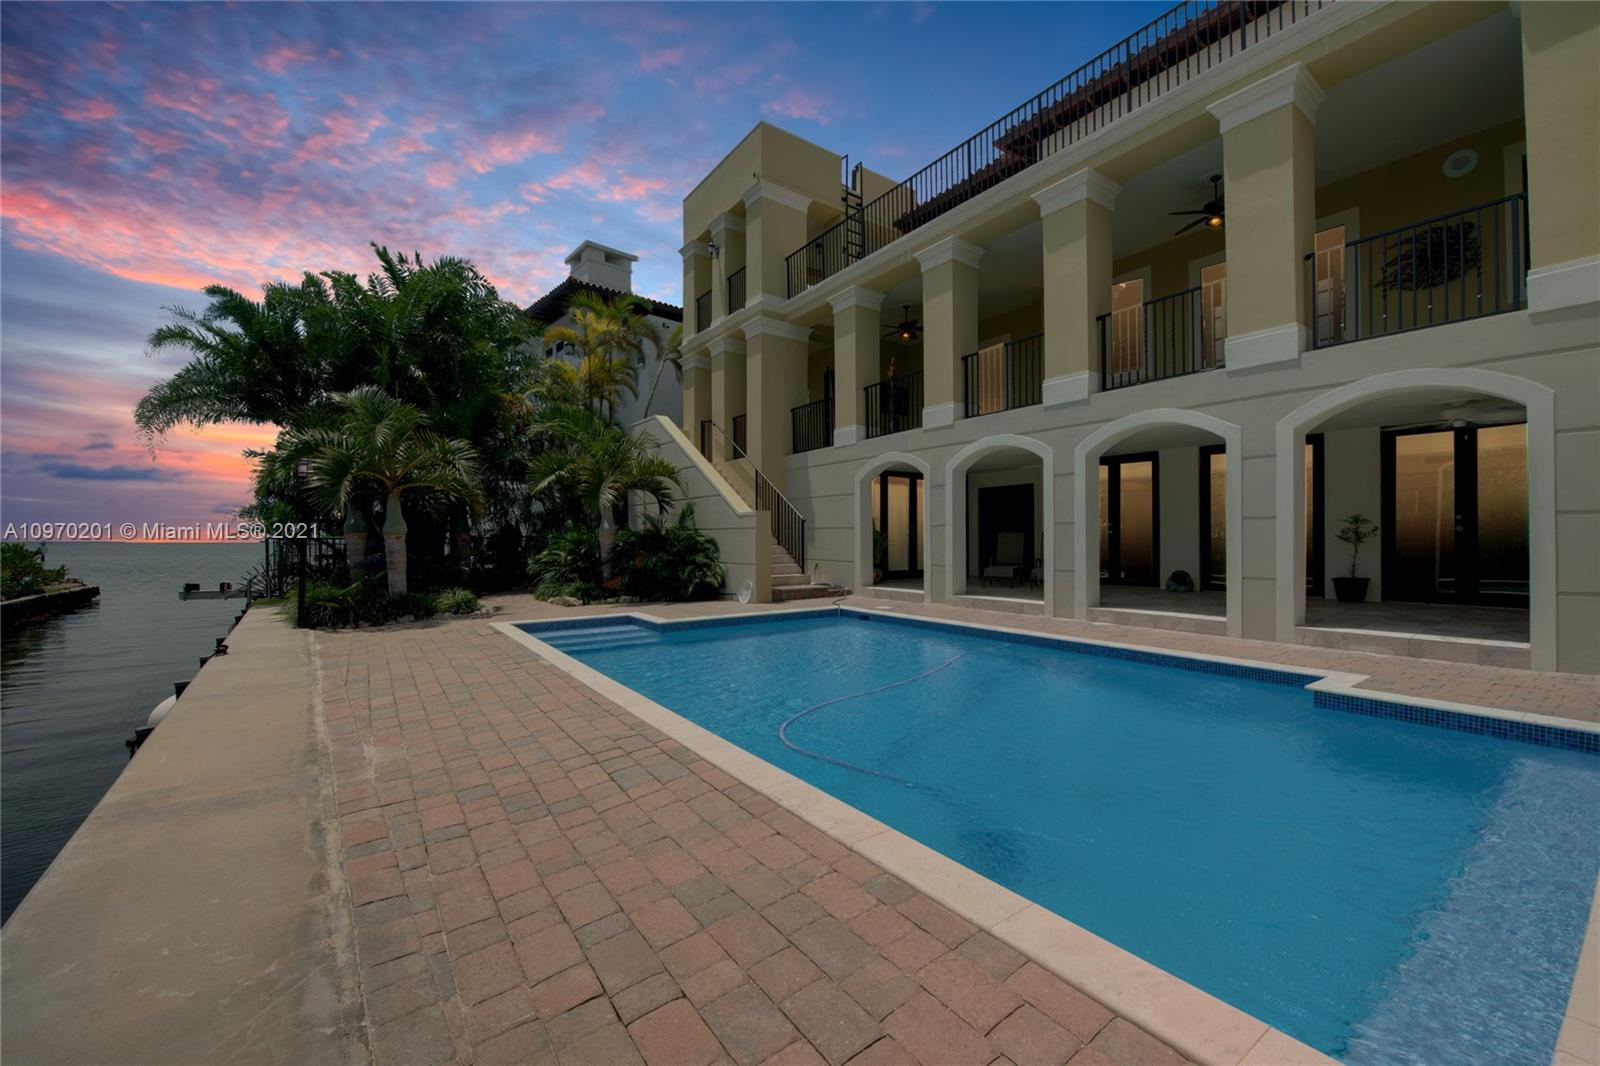 Stunning and impressive one of a kind property in the heart of Coconut Grove.  Nestled at the private end of Poinciana Avenue, within the guard-gated prestigious Four Way Lodge Estates. Breathtaking views of downtown Miami and Biscayne Bay. Spectacular oversized terraces run along all three levels and can be accessed from almost every room. Property is complete with gourmet chef's kitchen/butler's pantry, elevator, multiple living areas, fireplace, three car garage, impact windows, heated salt water system pool, boat davits, and so much more. Impressive master suite with his/hers bathrooms and closets. All bedrooms are en suite. Over 1000 square feet of enclosed a/c bonus recreation/reception space. The perfect home for entertaining. One house from the bay. Must see to appreciate.